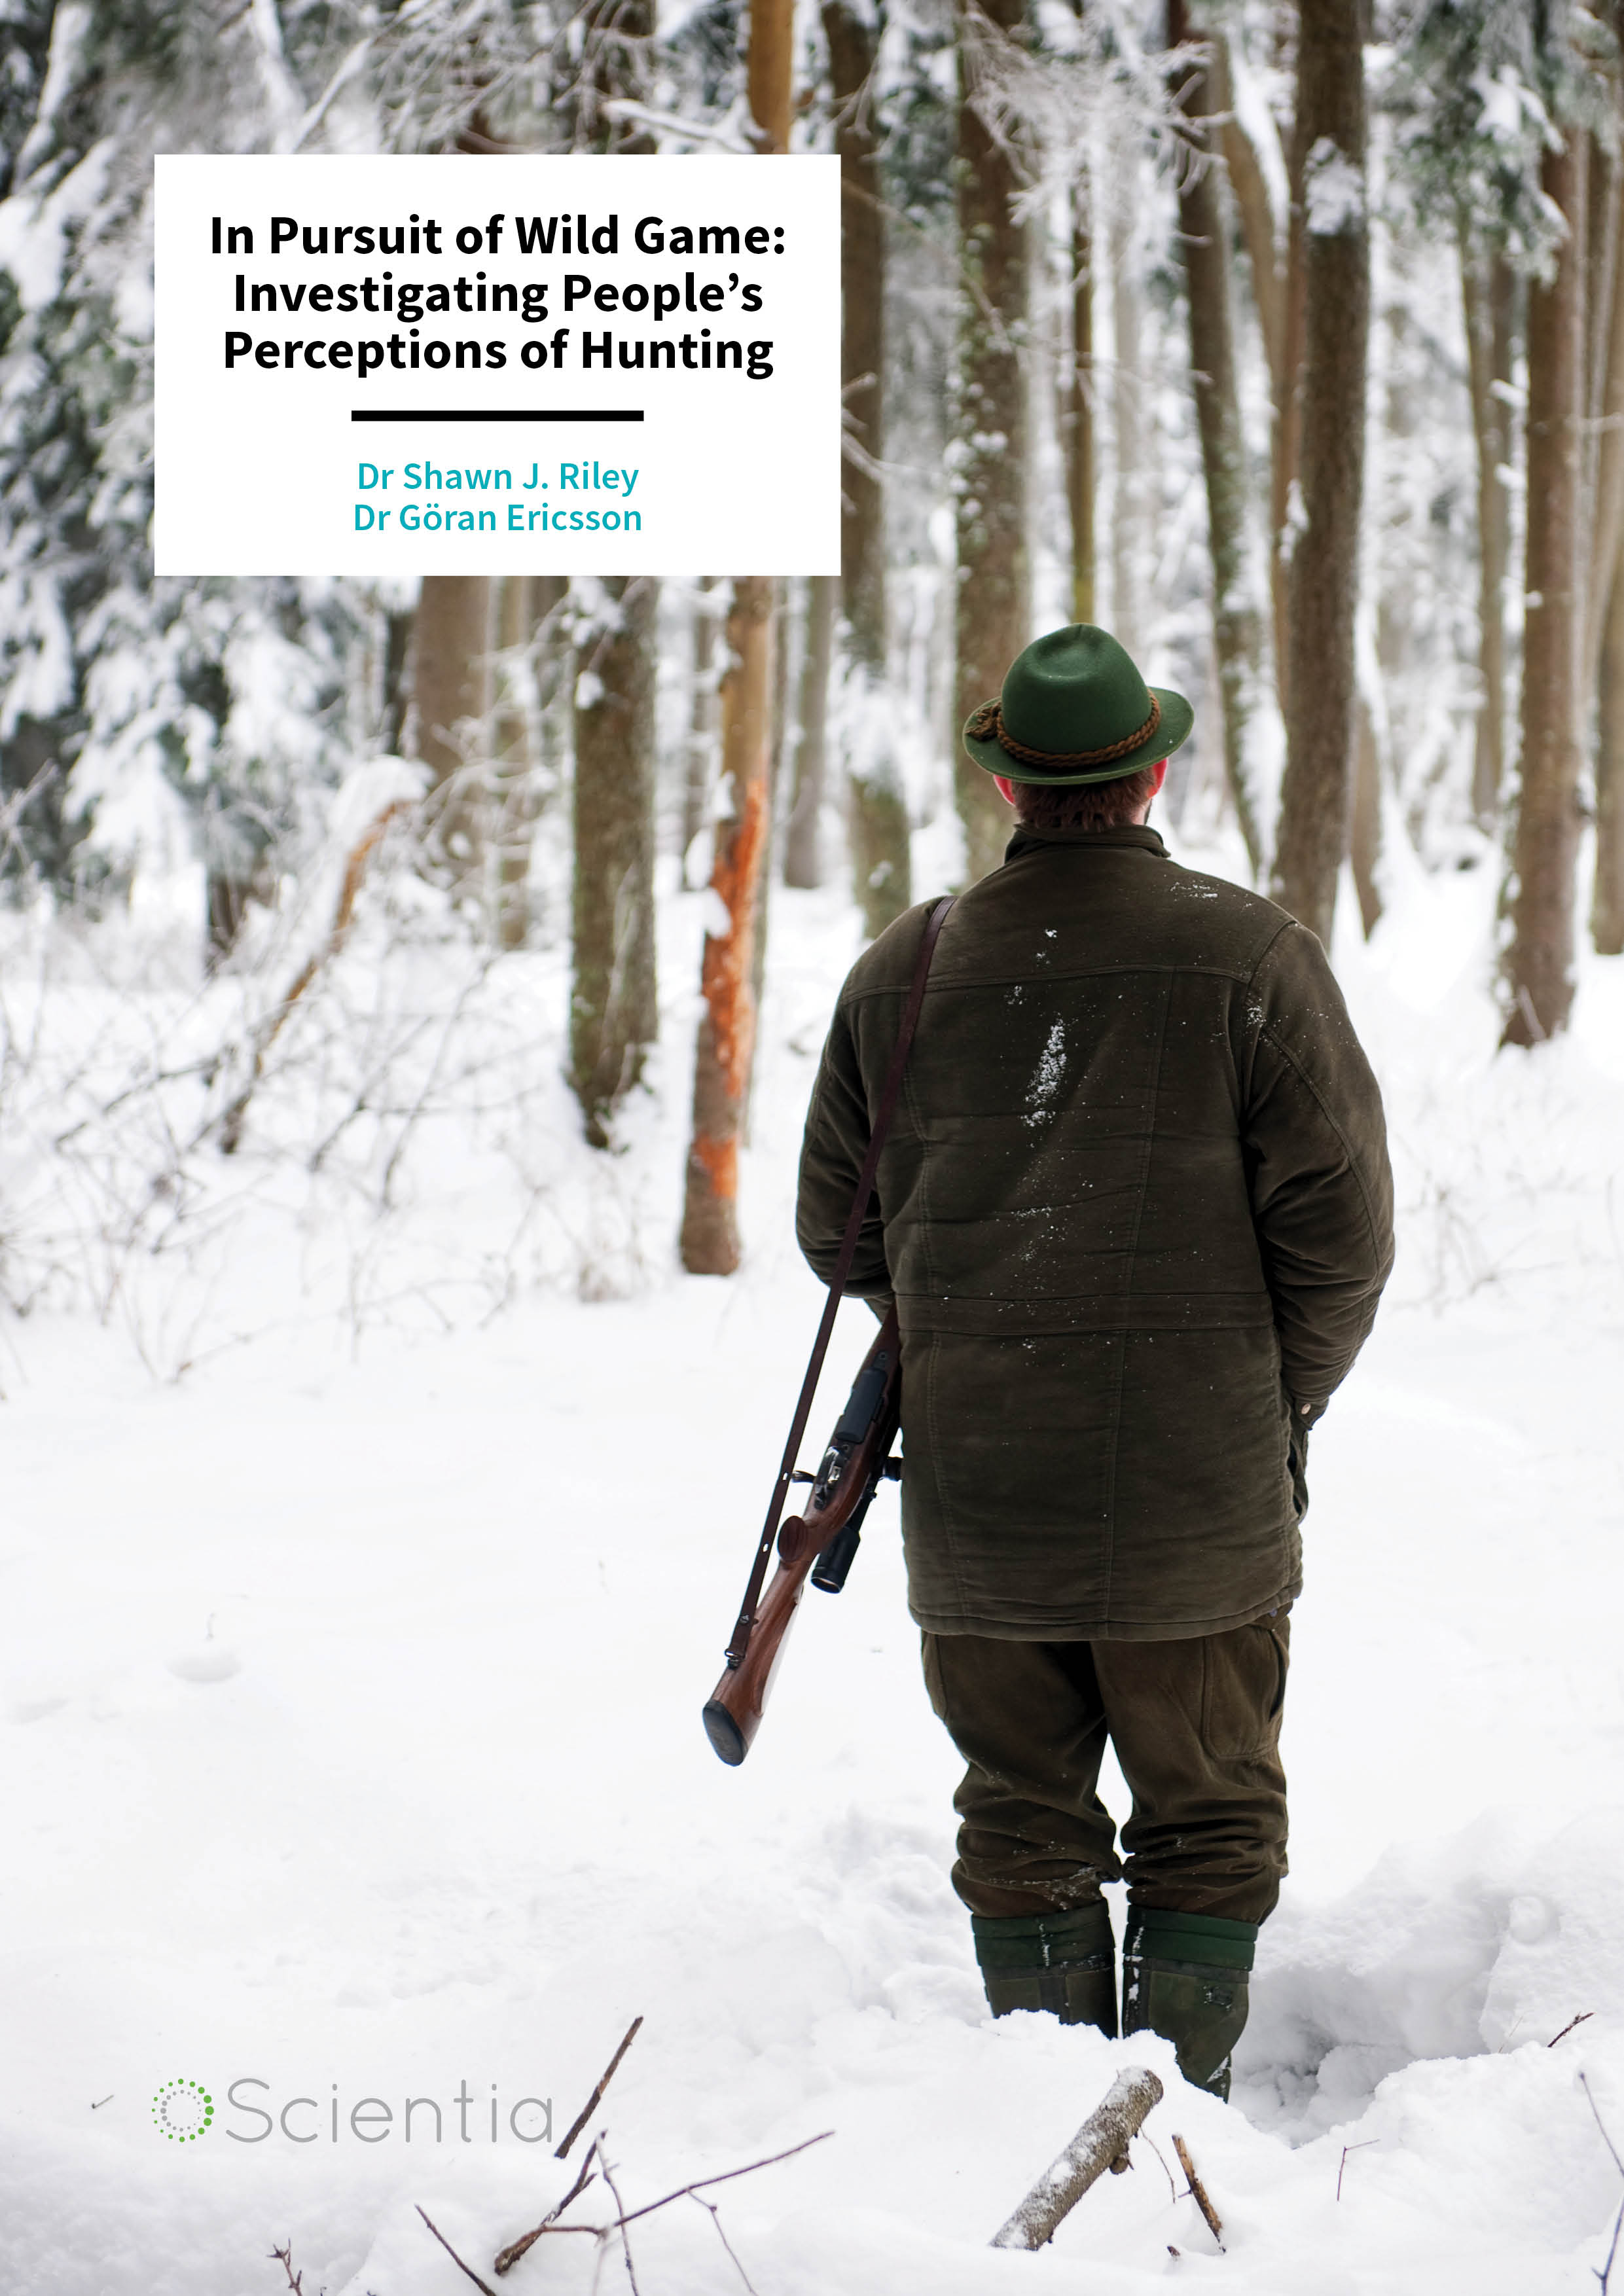 Dr Shawn Riley | Dr Göran Ericsson – In Pursuit of Wild Game: Investigating People's Perceptions of Hunting